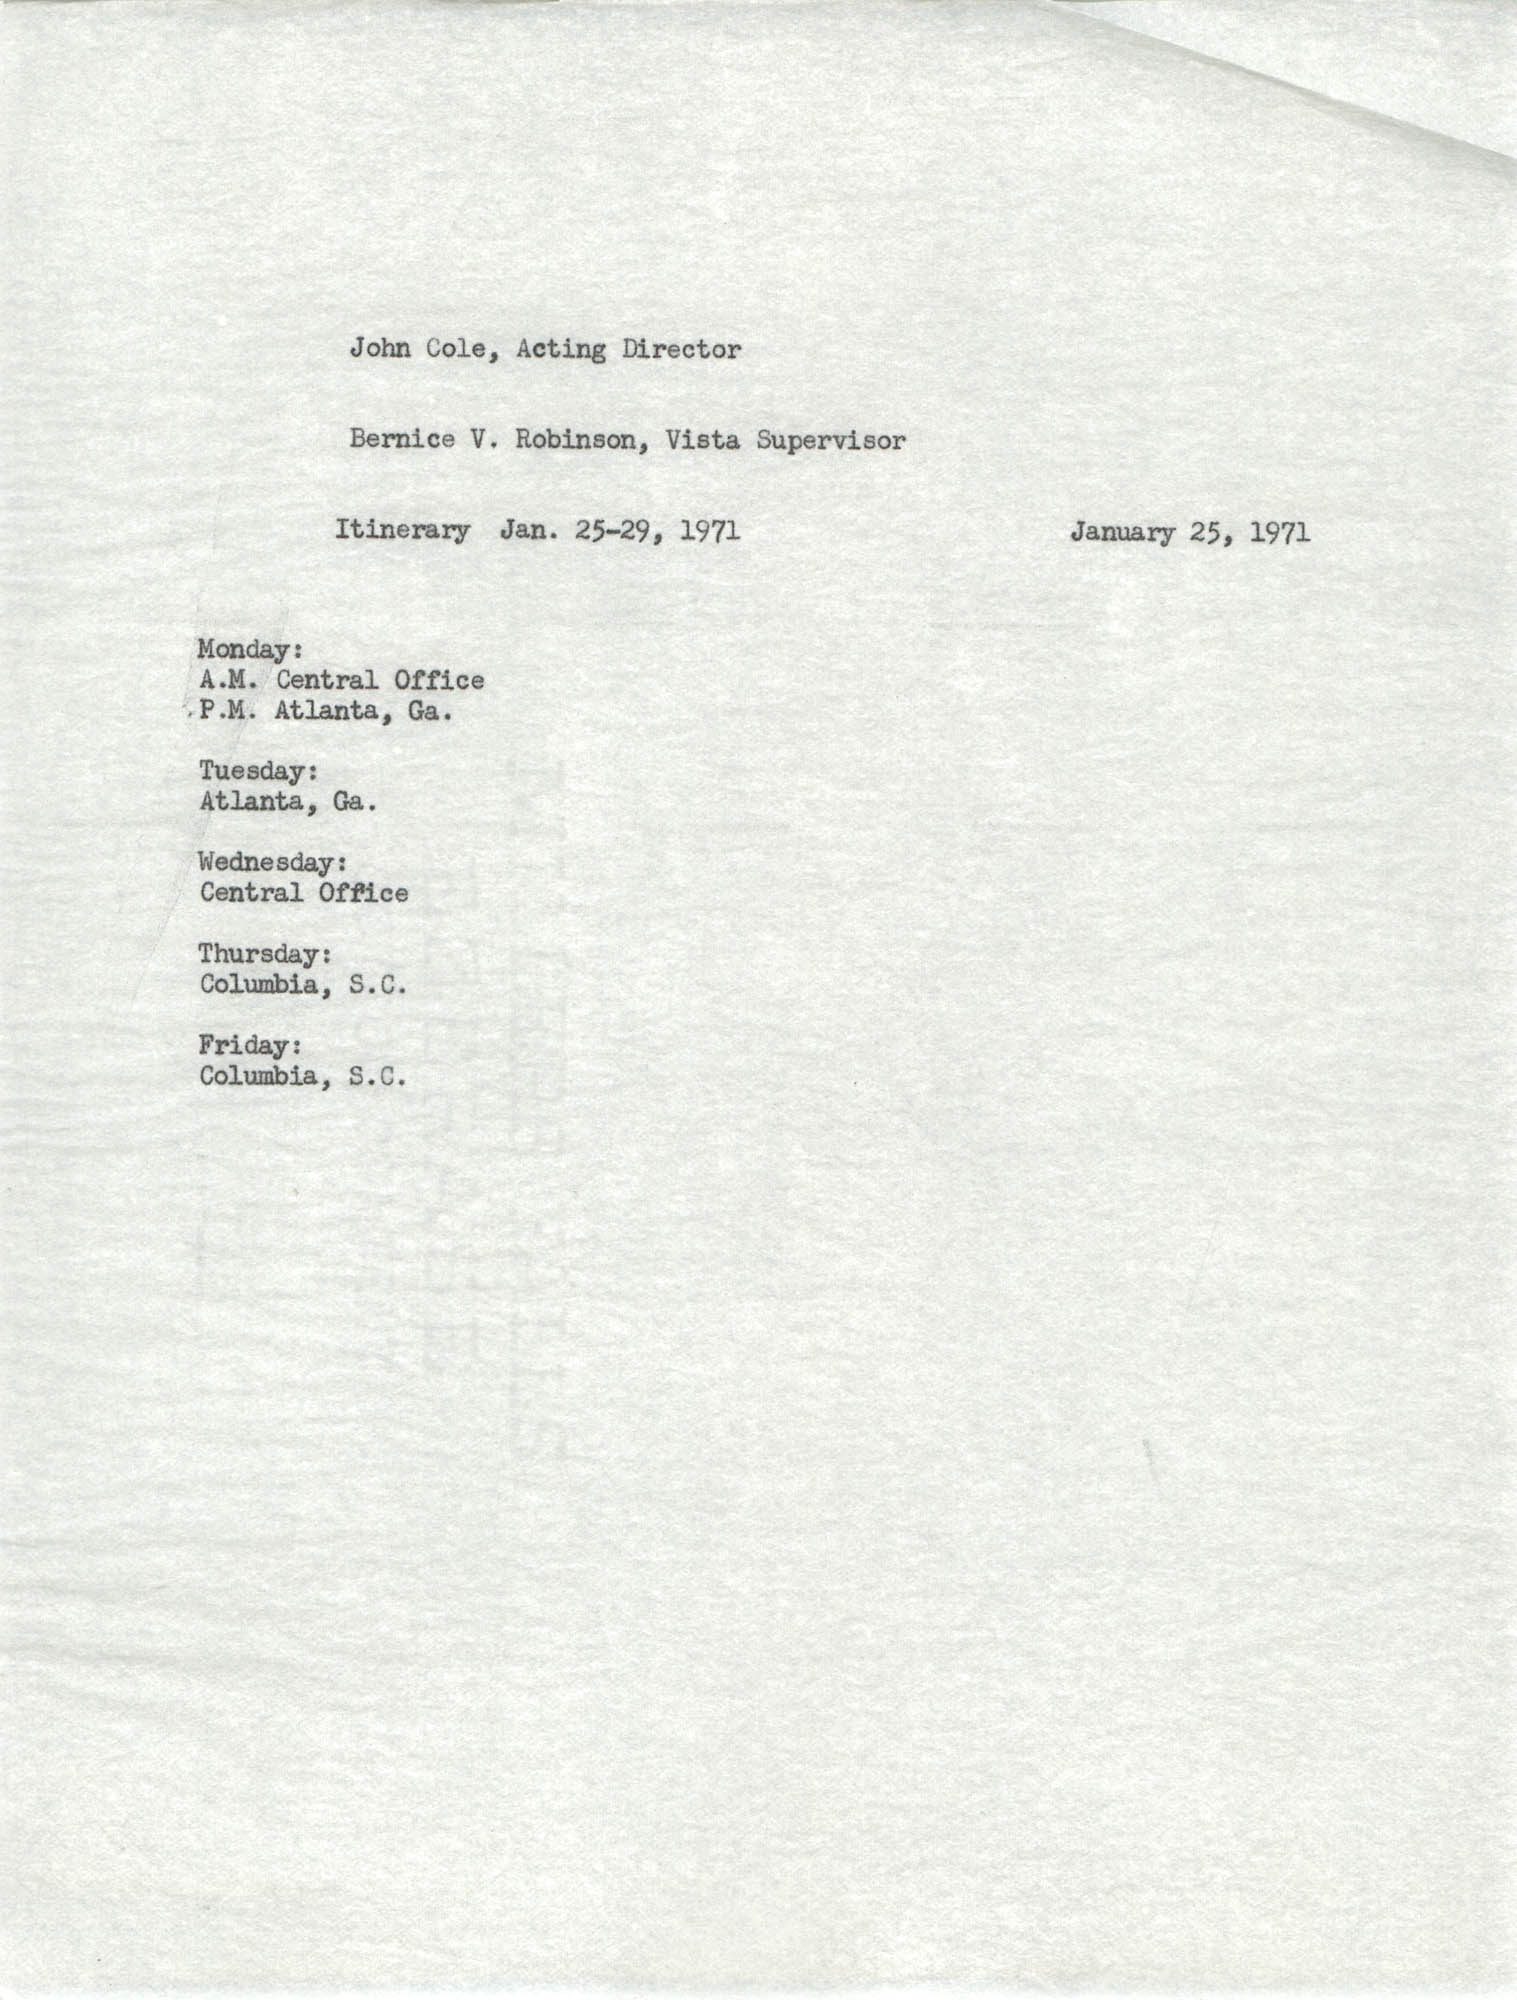 Memorandum from Bernice V. Robinson to John Cole, January 25, 1971